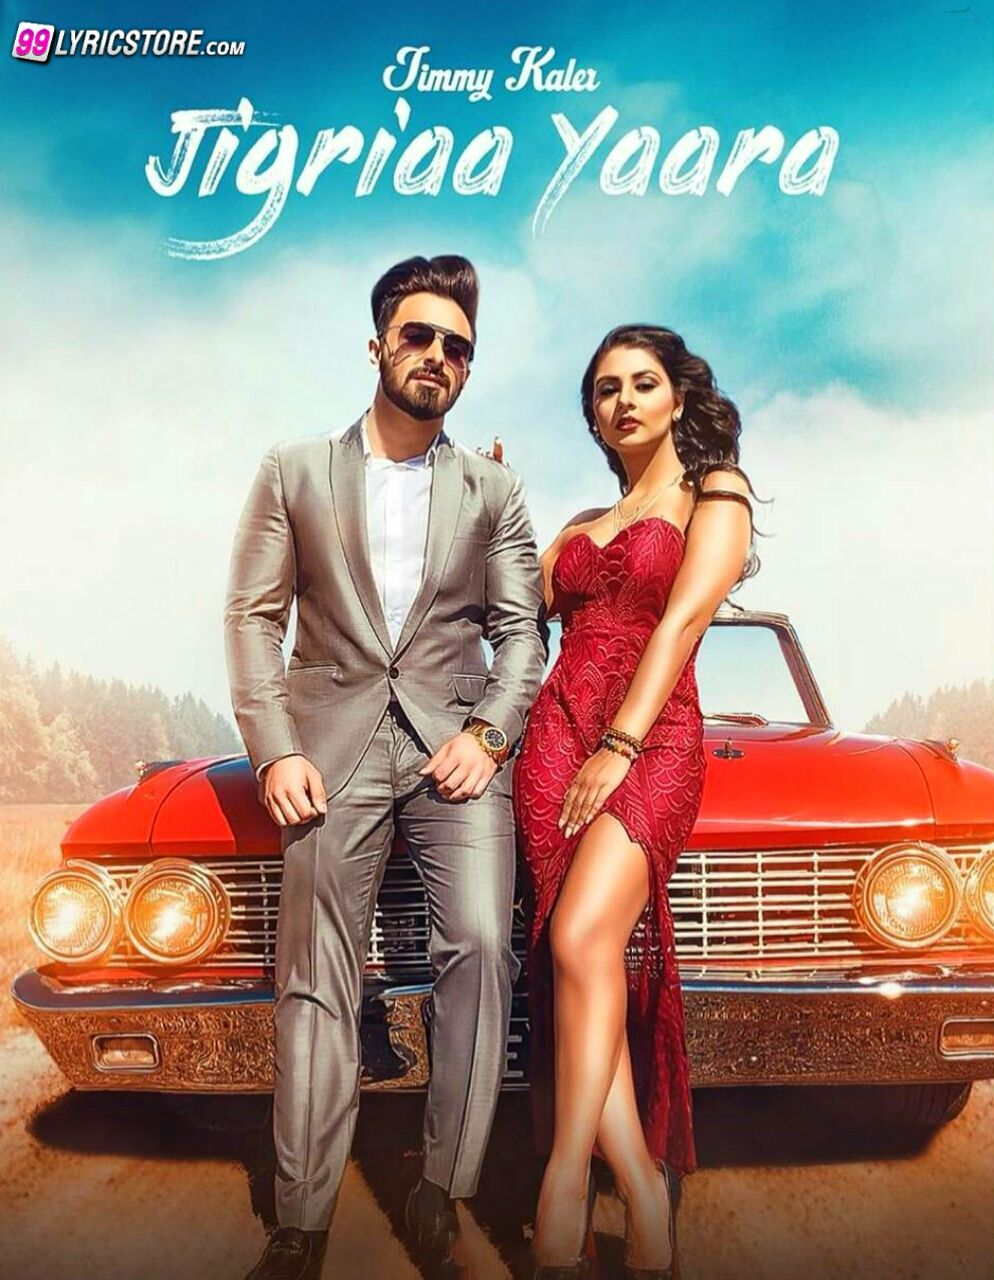 JIGRIAA YAARA new Punjabi Song Lyrics sung by Jimmy Kaler and Shipra Goyal